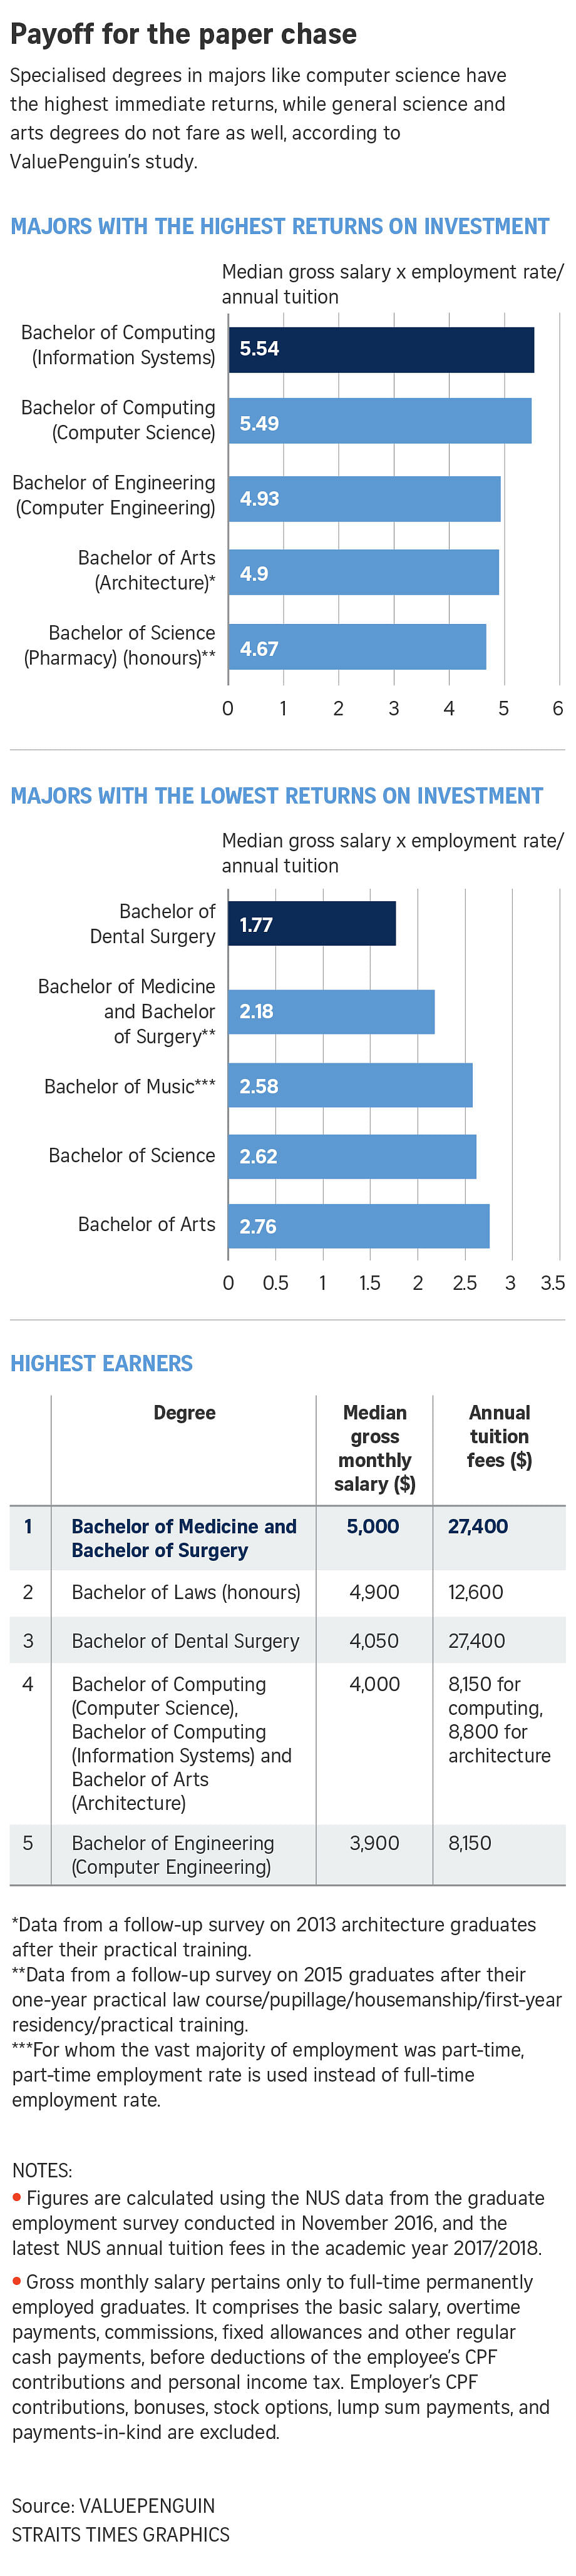 Specialised degrees give best returns on university fees